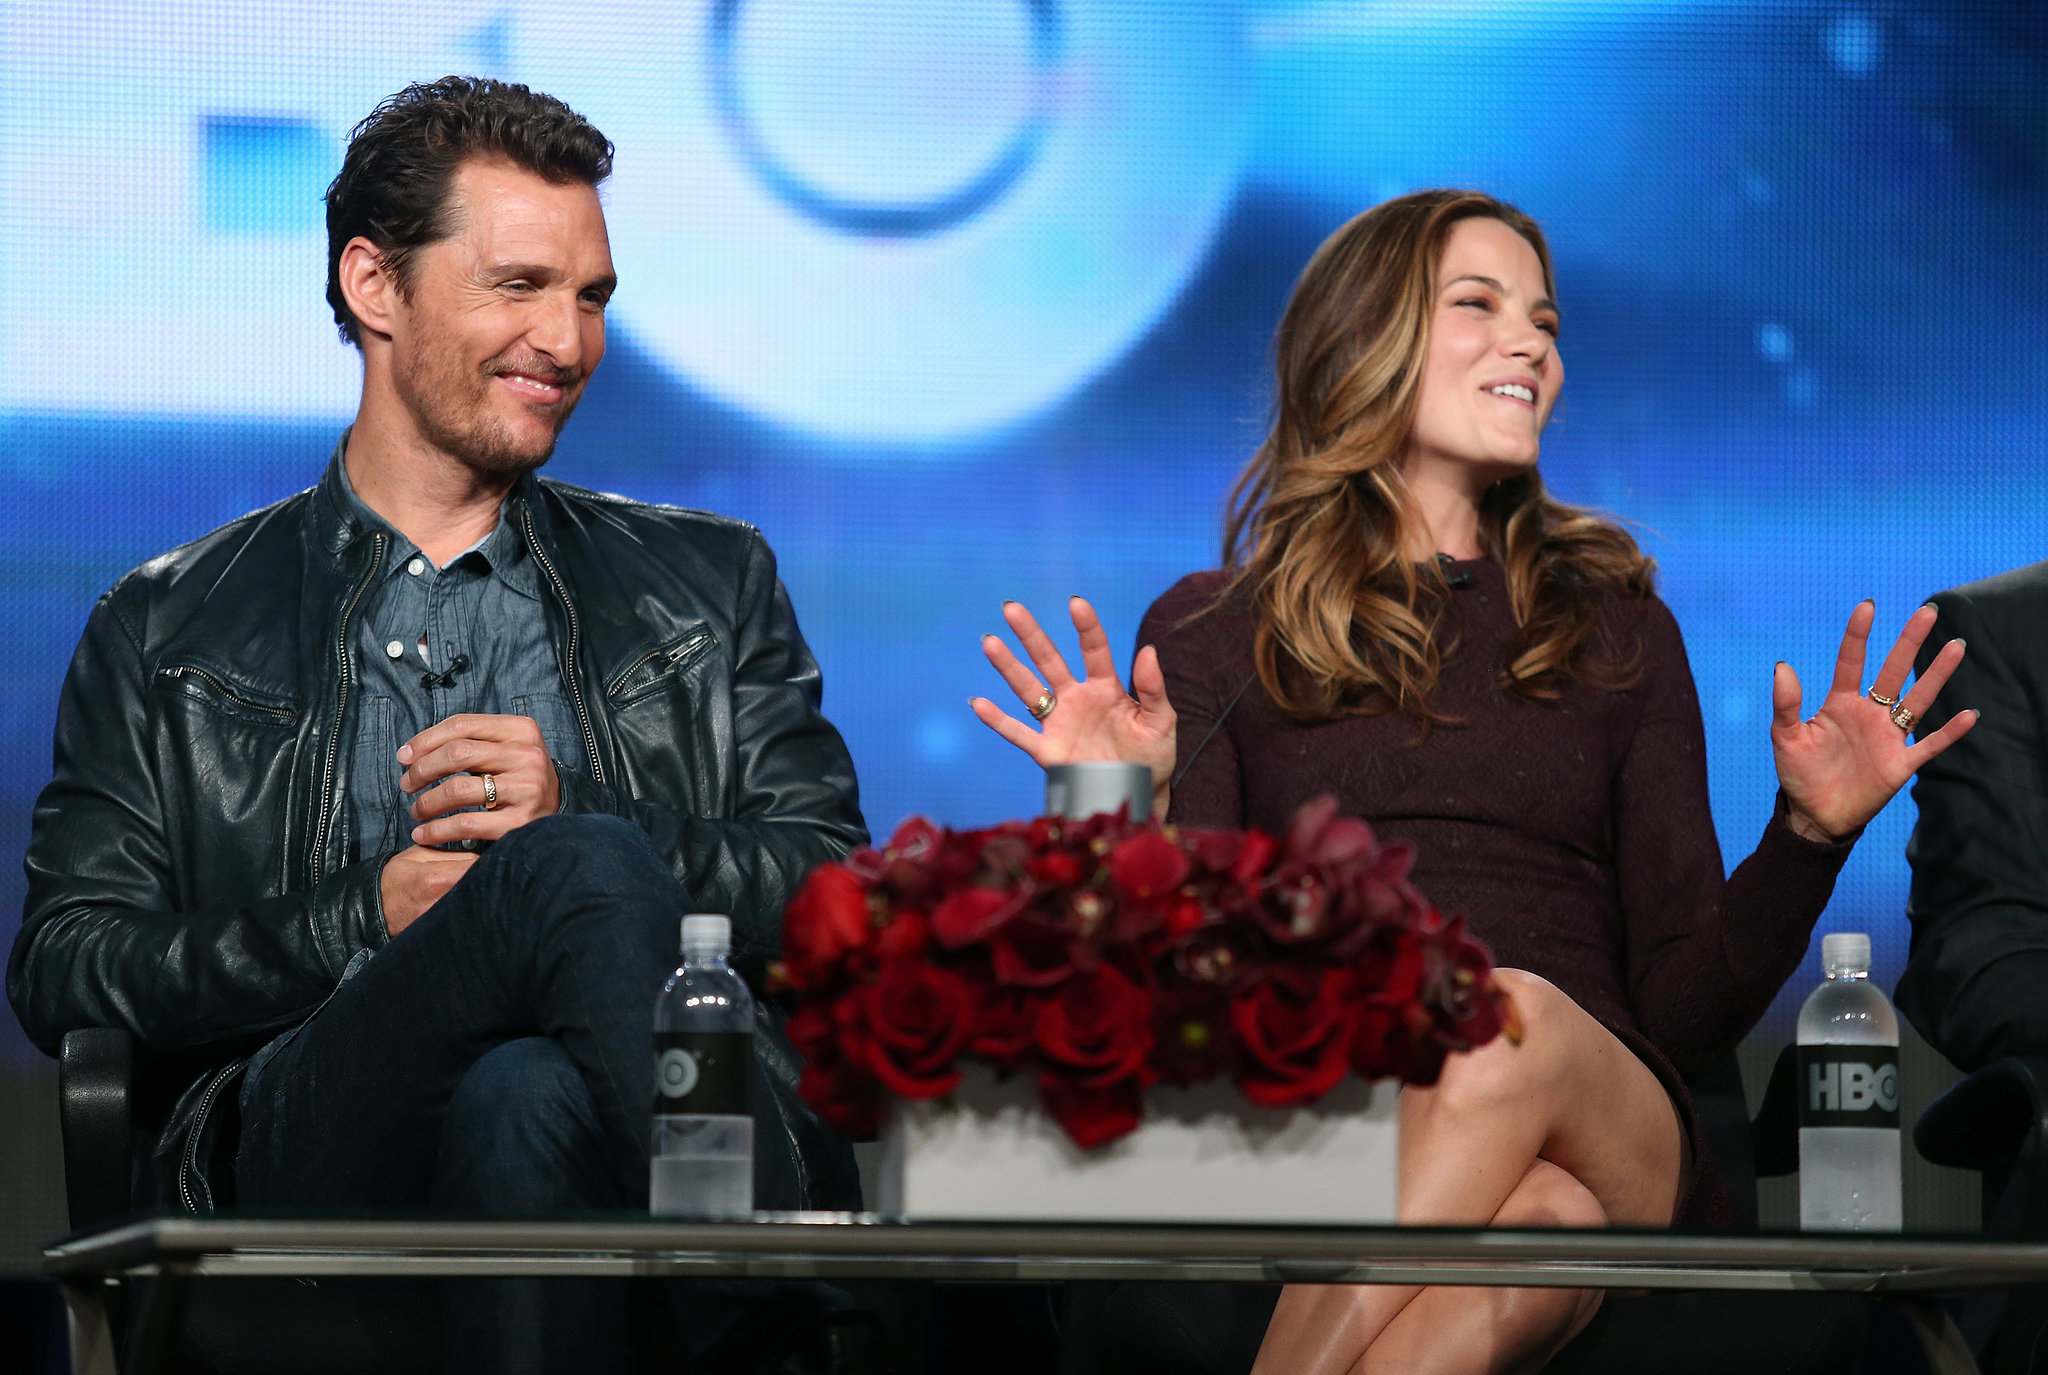 Matthew McConaughey and Michelle Monaghan got animated together.